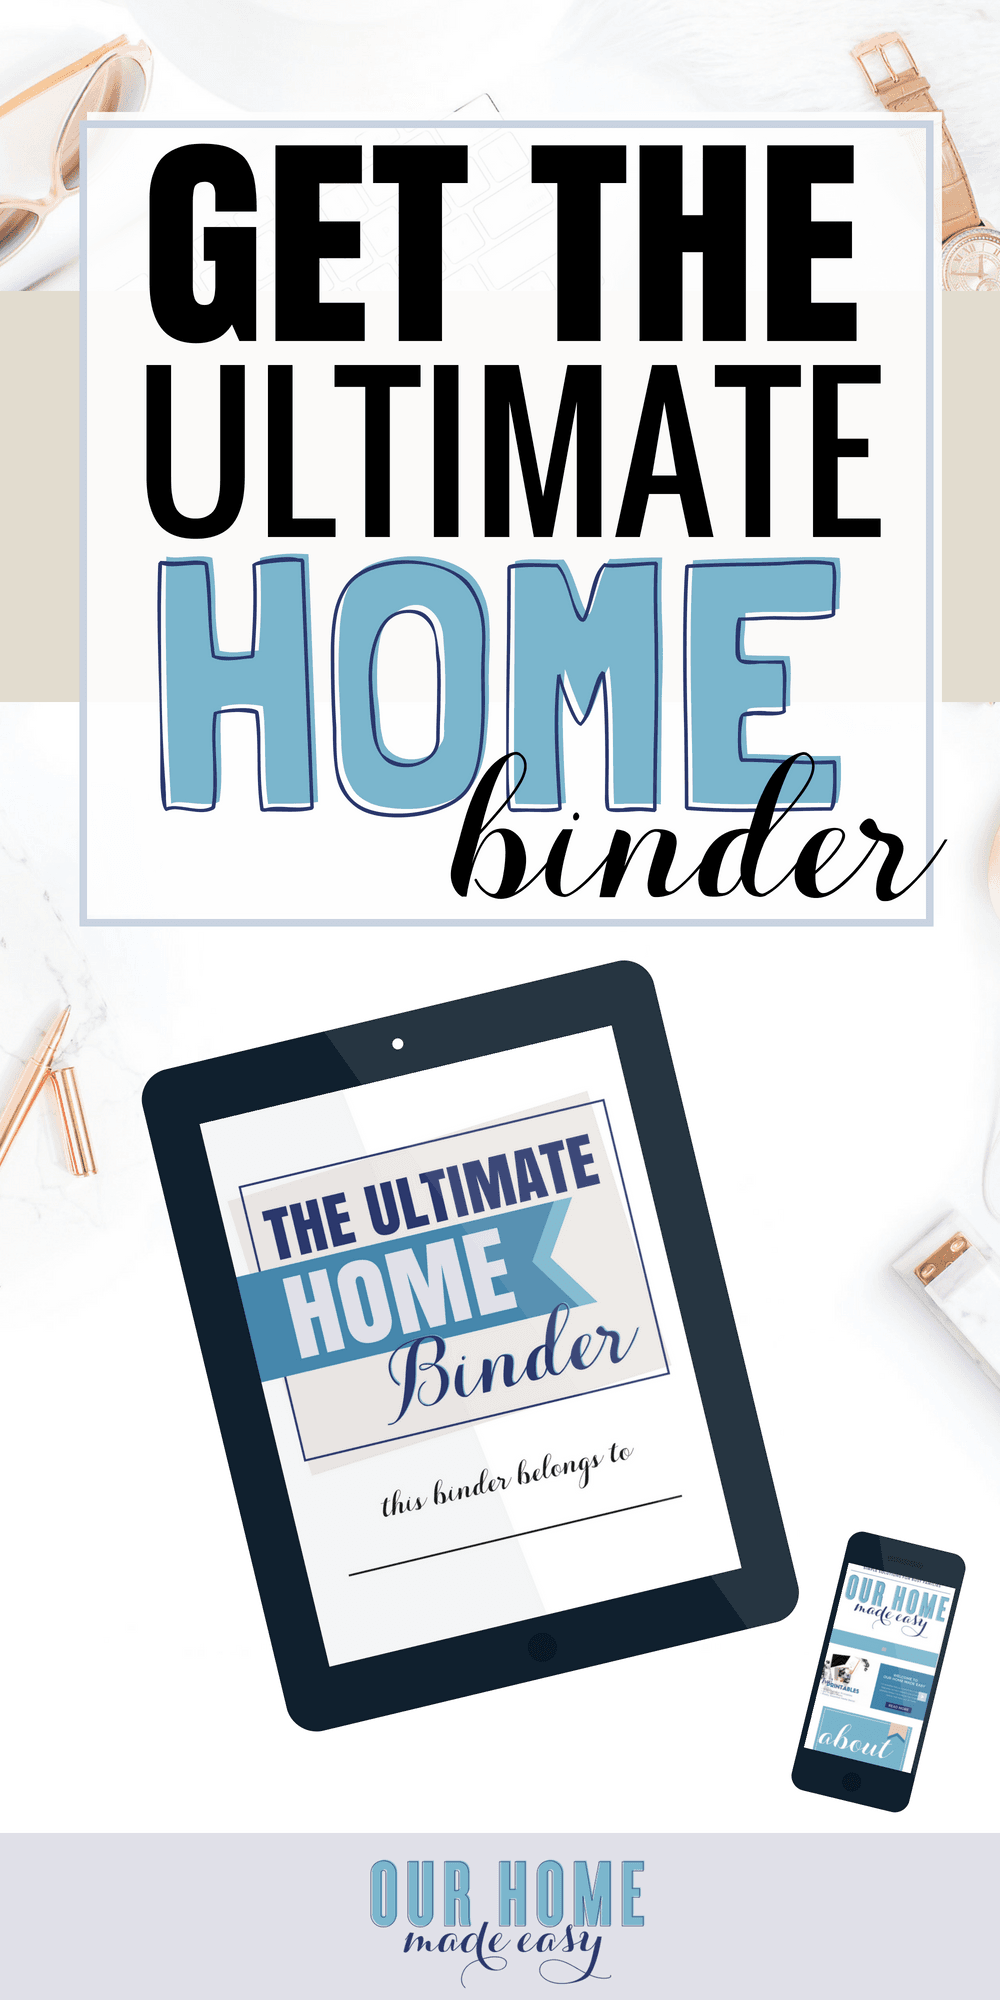 Are ready to organize your life at home? The Ultimate Home Binder will empower you to take control of your home andcreate your perfect 'one-stop' shop!